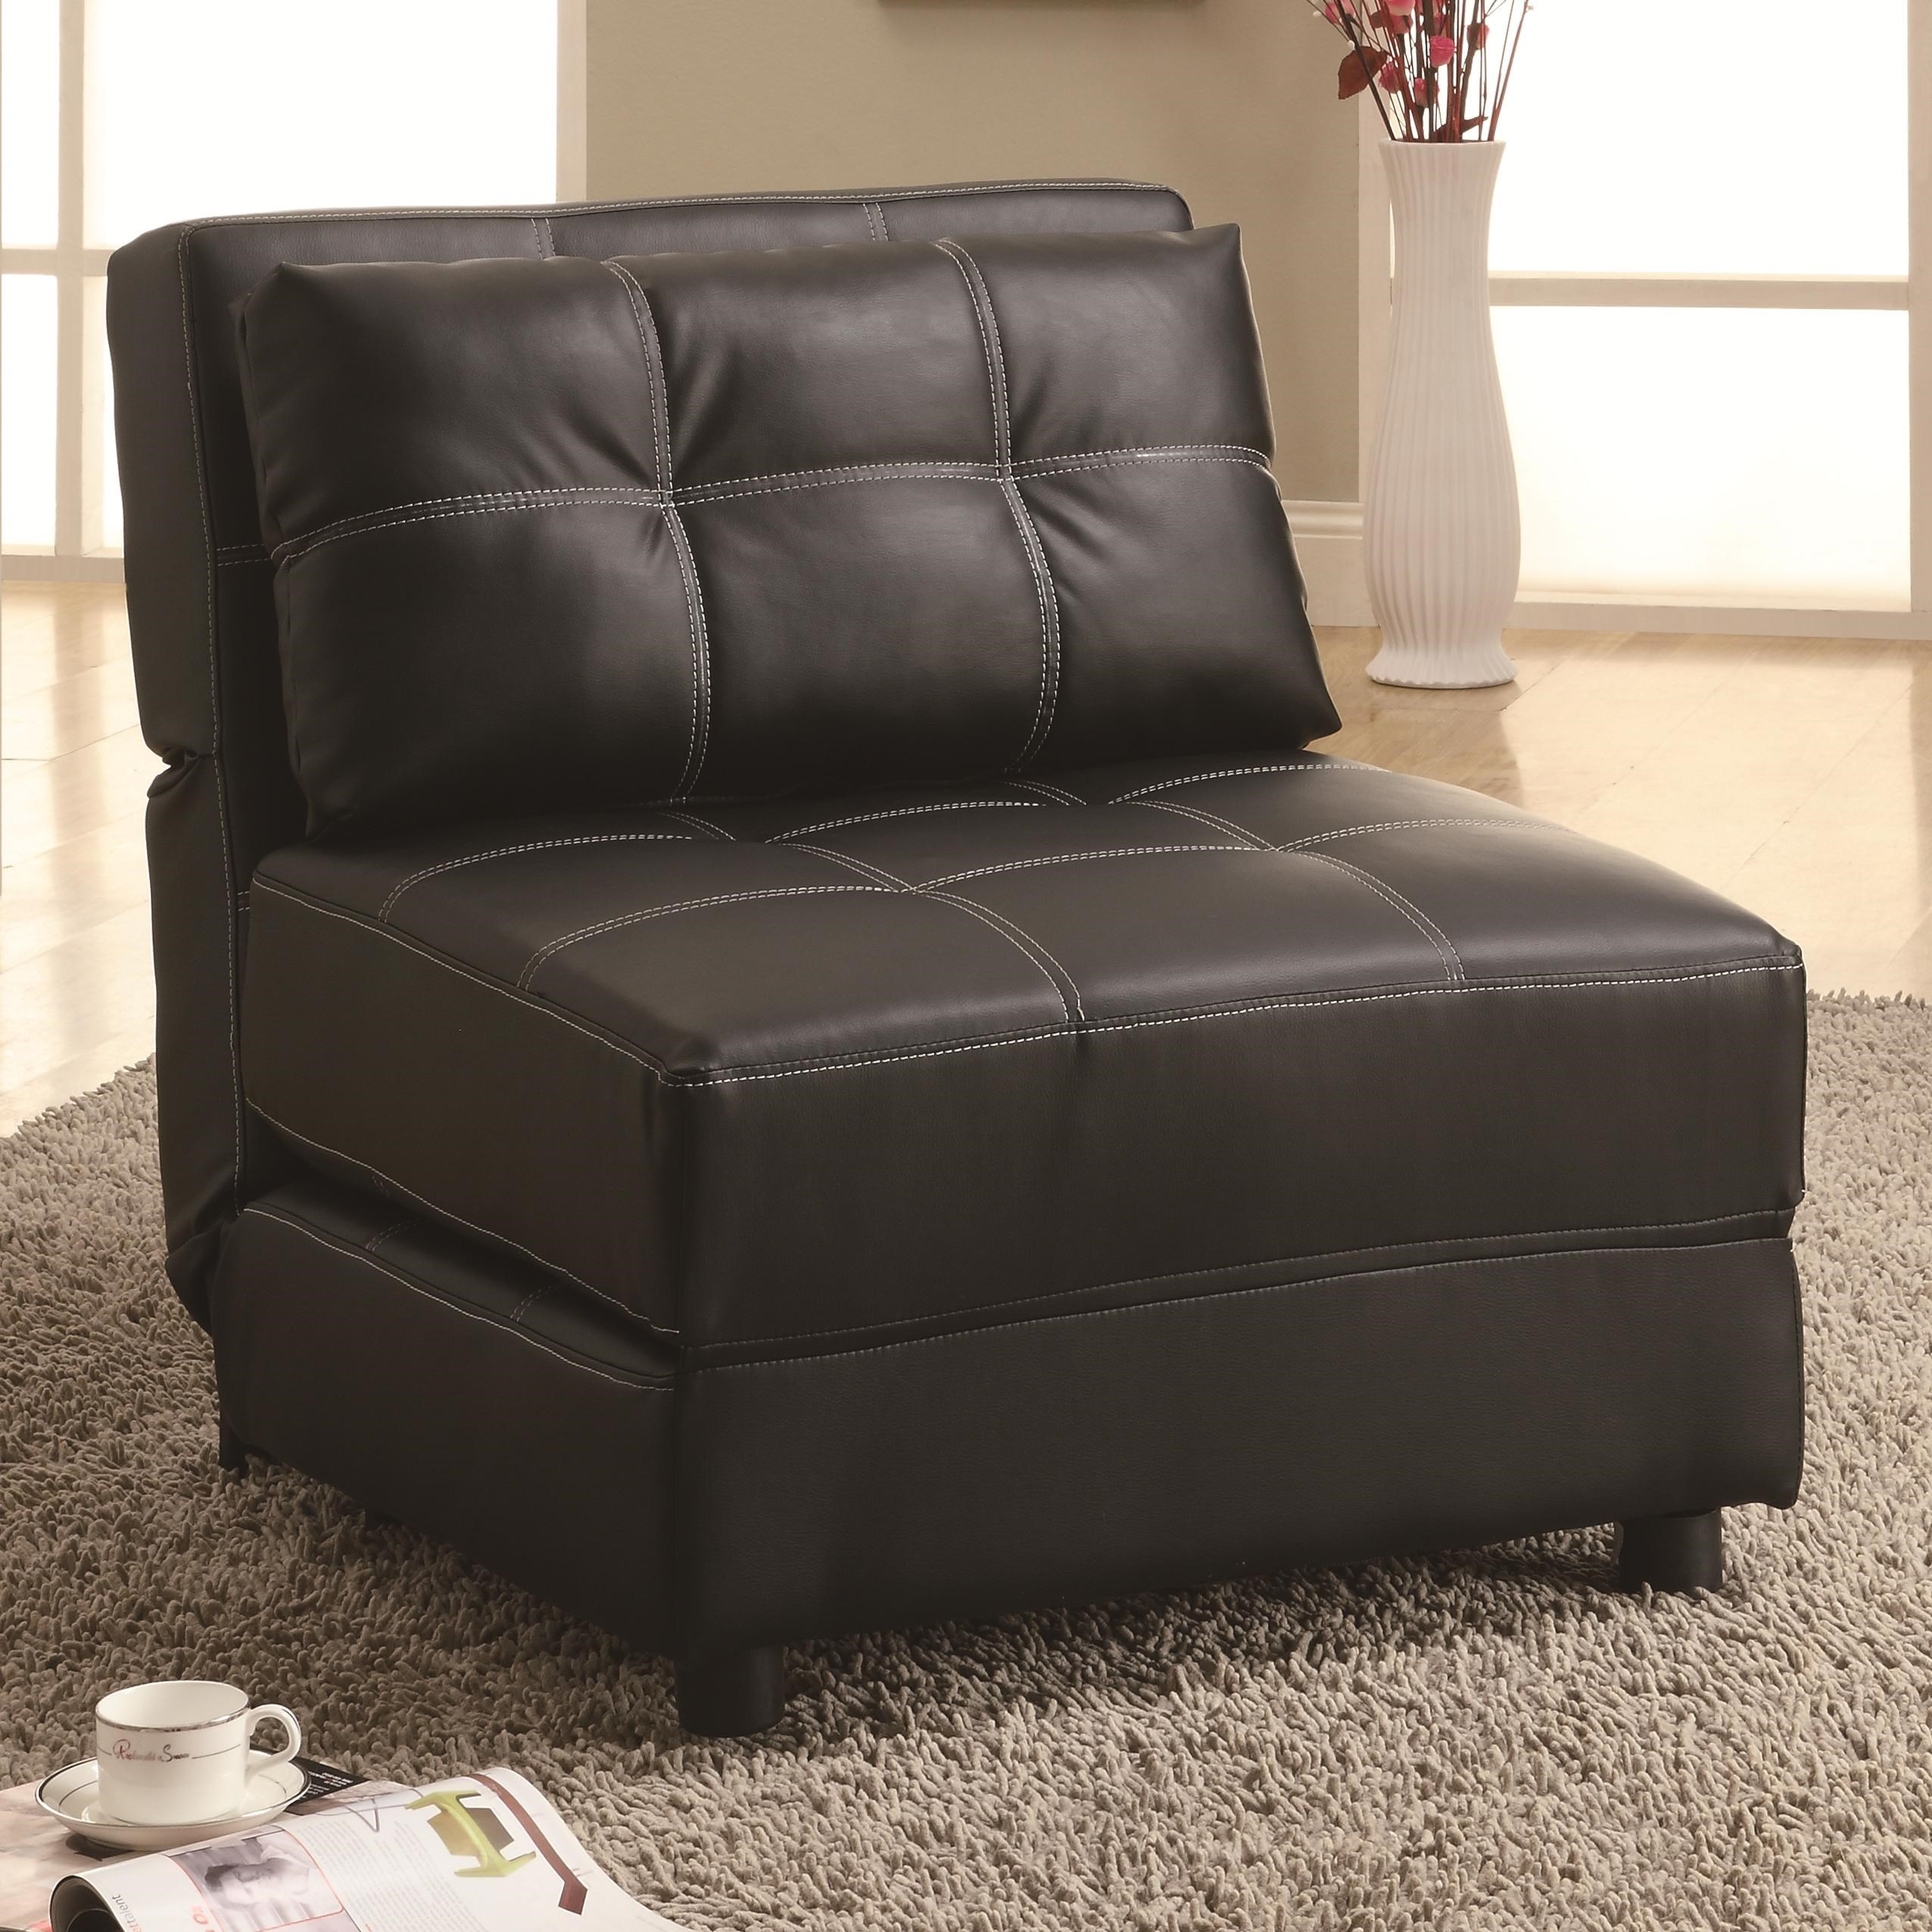 Coaster Accent Seating Contemporary Armless Lounge Chair/Sofa Bed   Coaster  Fine Furniture